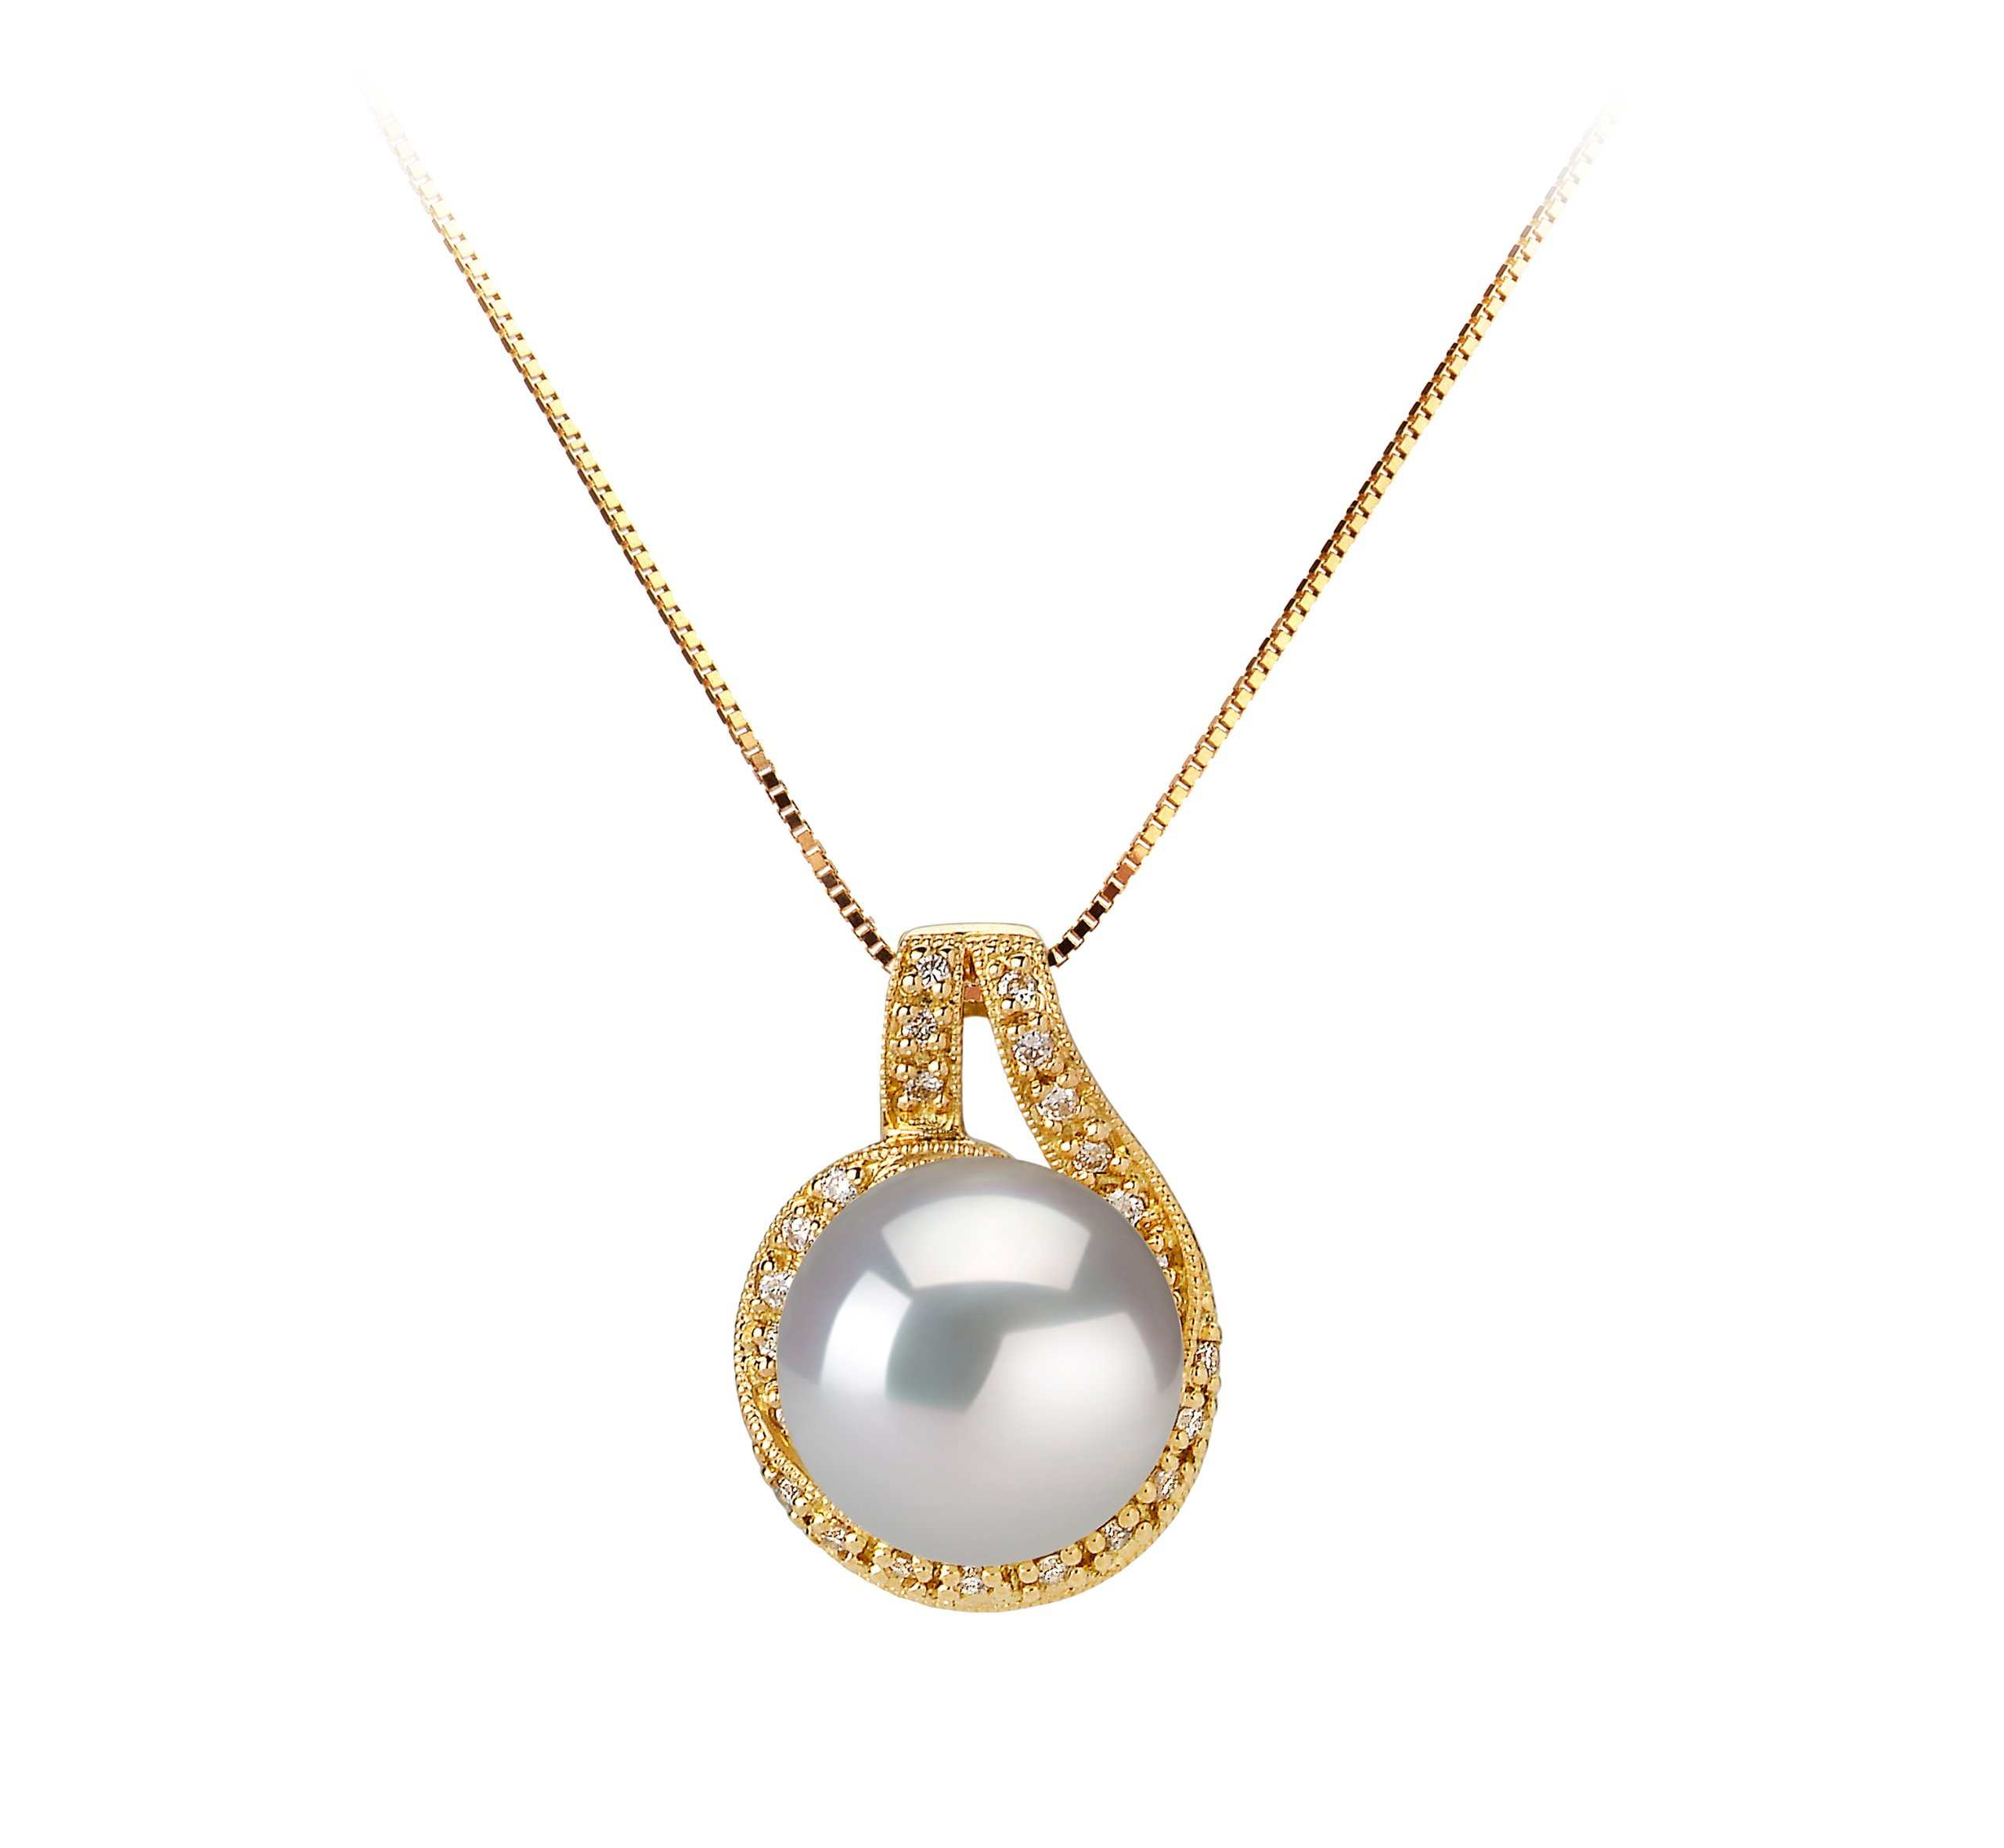 Angelique White 10-11mm AAA Quality South Sea 14K Yellow Gold Cultured Pearl Pendant For Women